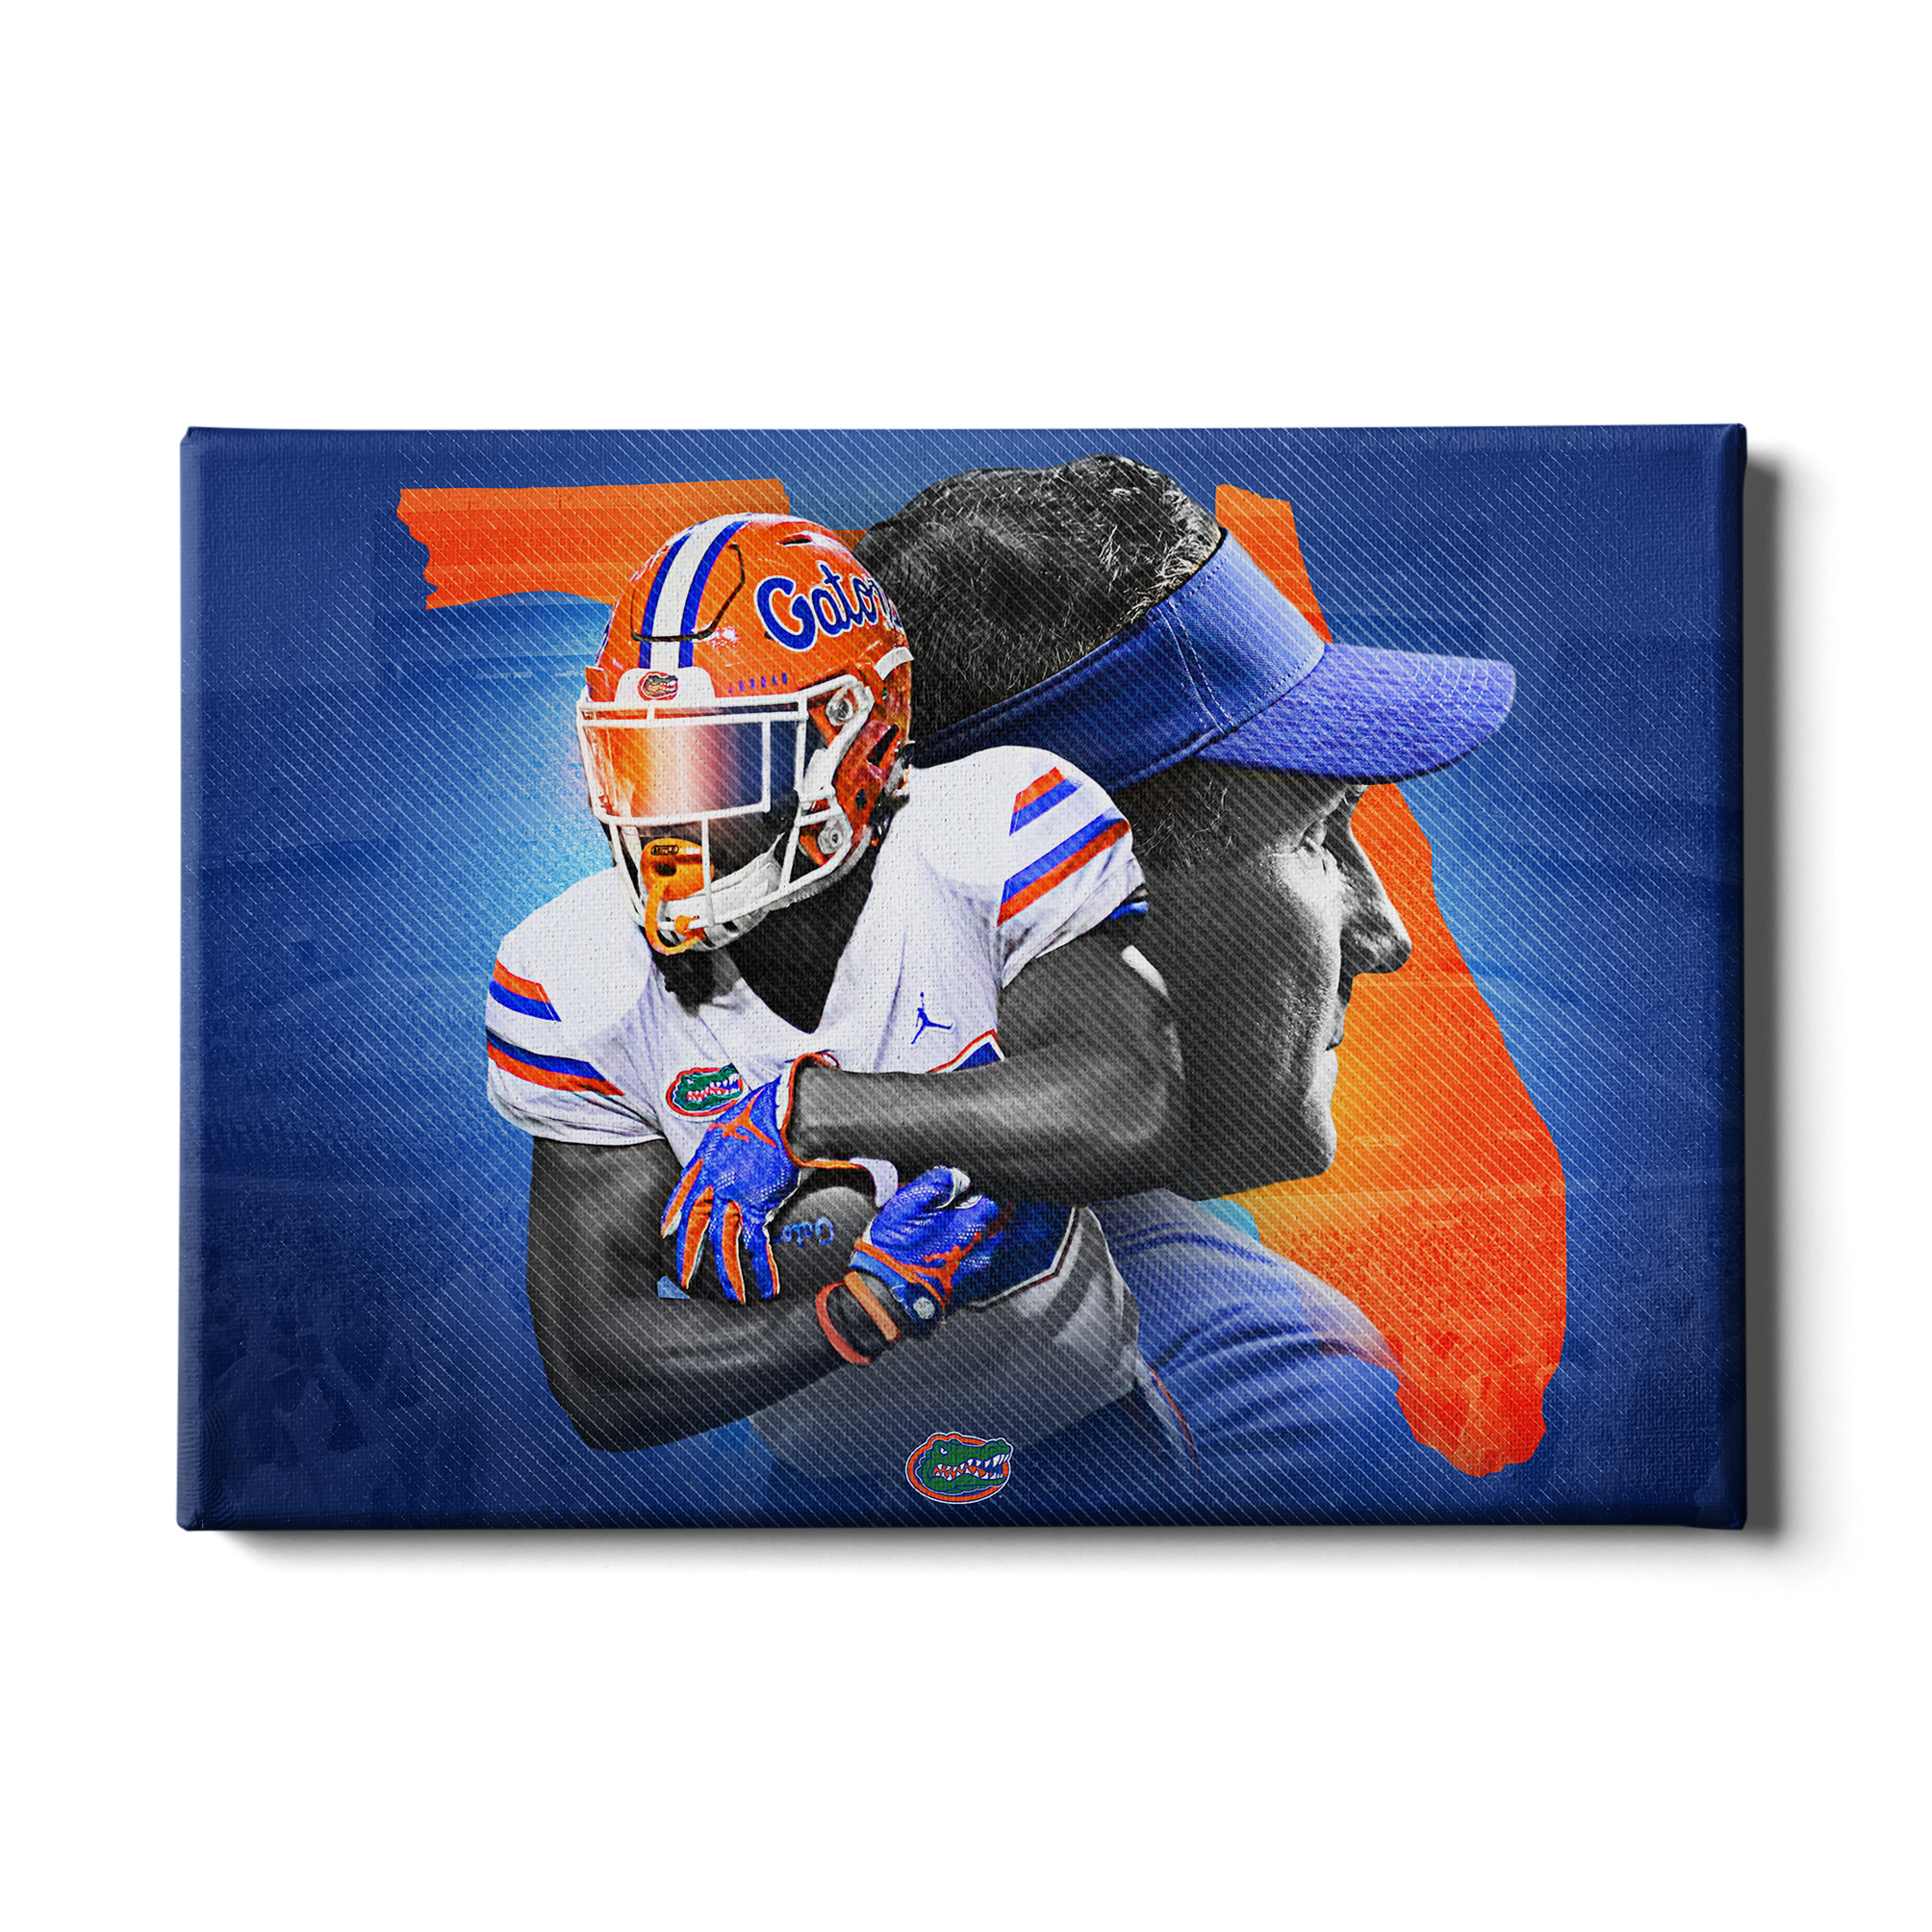 Florida Gators Gators Mind Of Mullen College Wall Art Wall Art Florida Gators